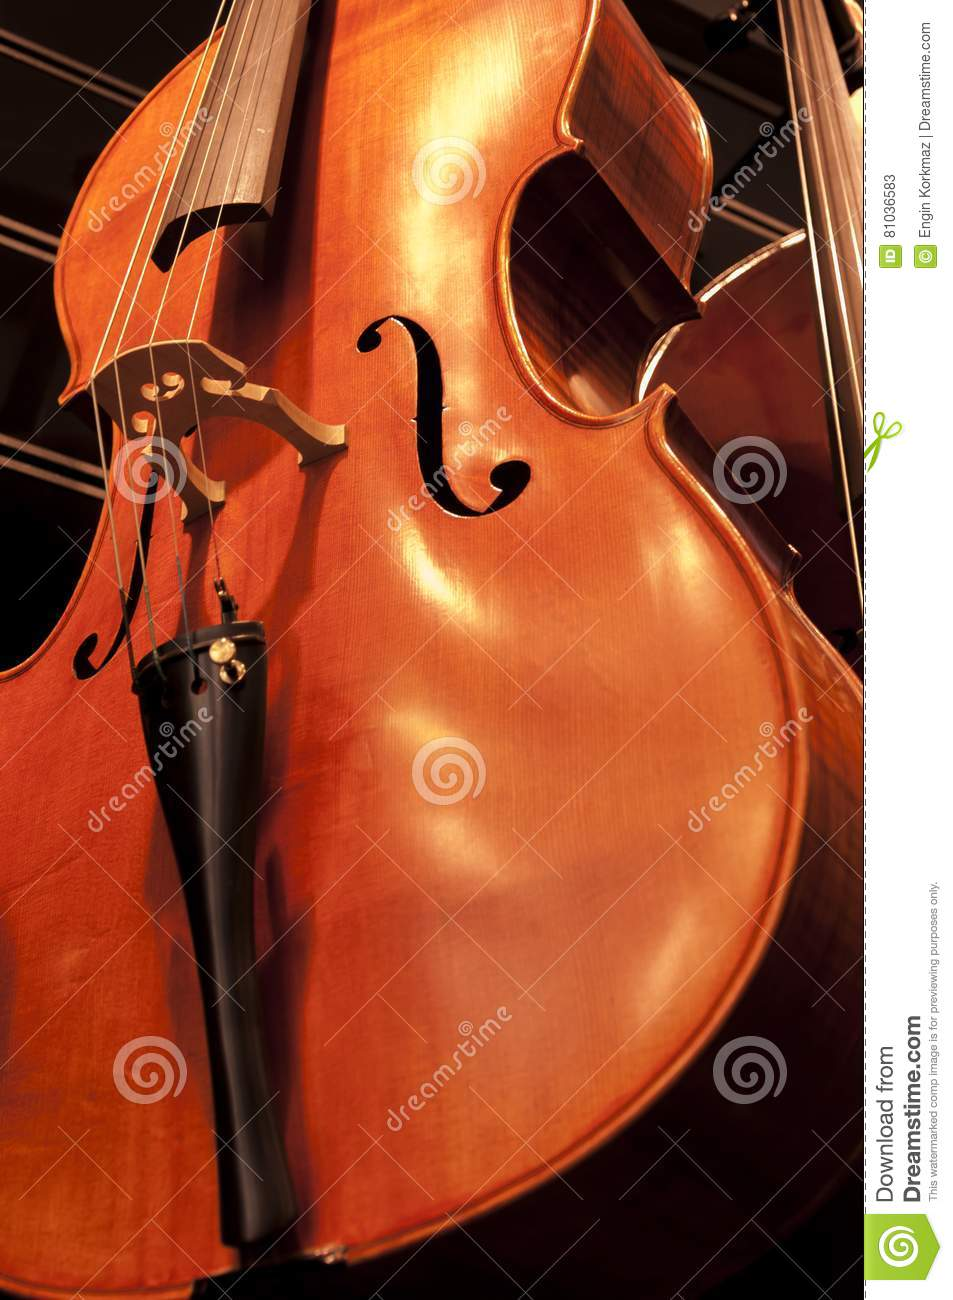 Violins on the wall stock image  Image of dark, color - 81036583